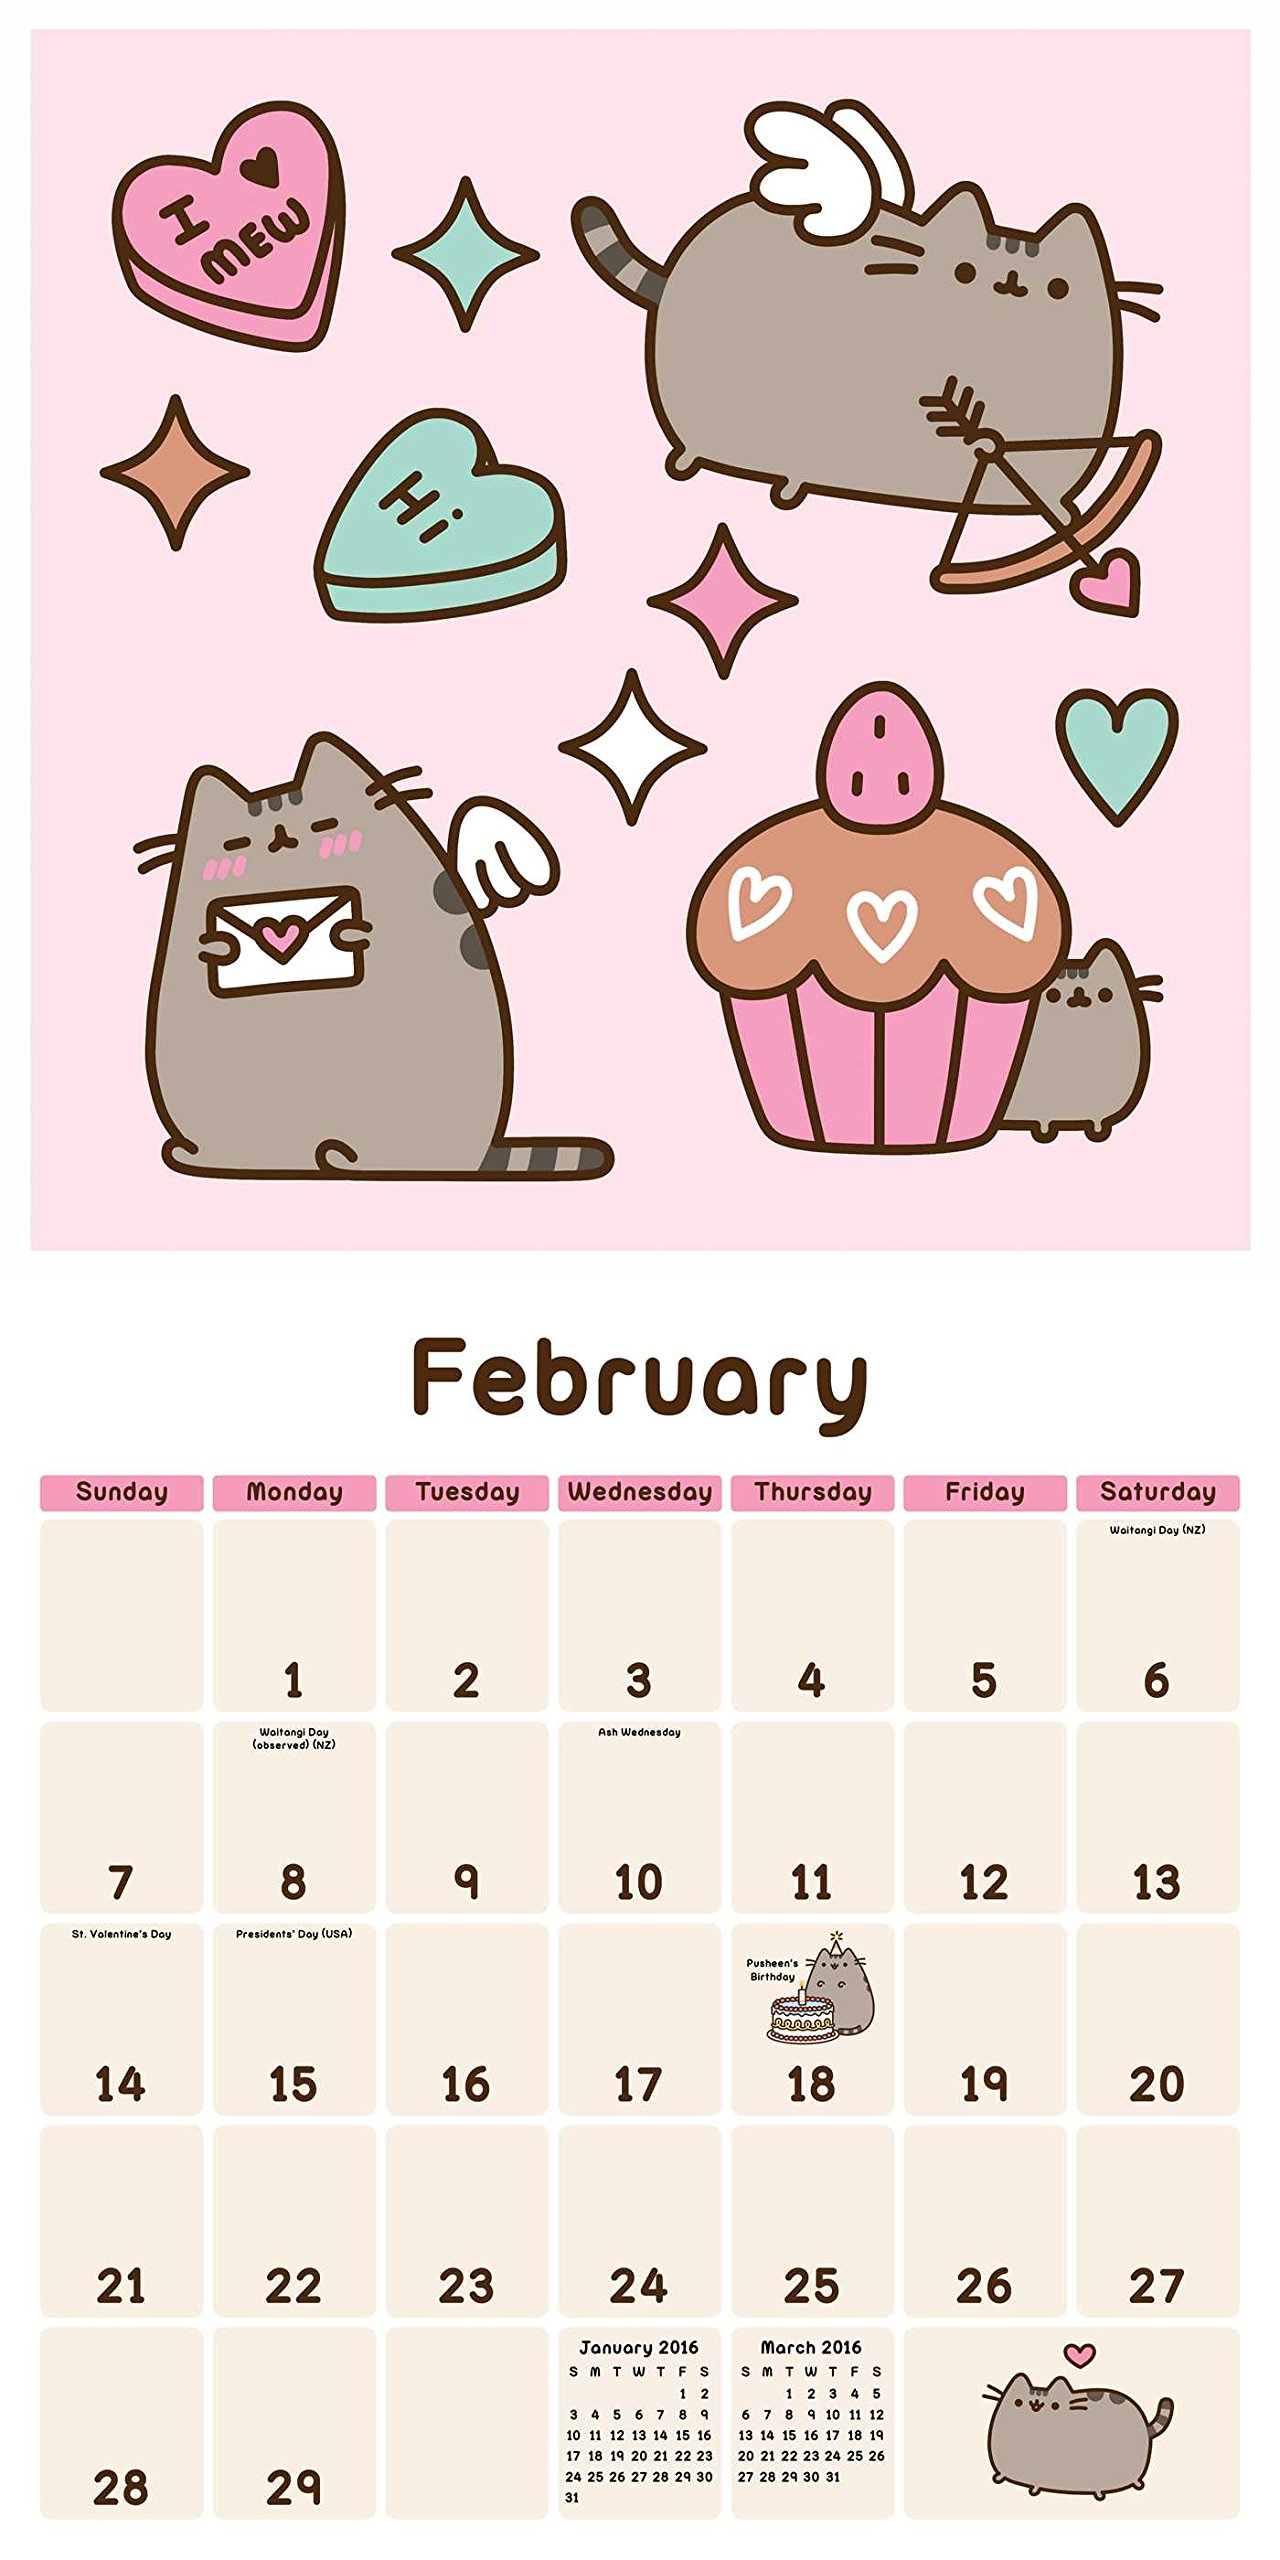 Awesome Pusheen The Cat 2016 Wall Calendar: Claire Belton: 0050837347472:  Amazon.com: Books